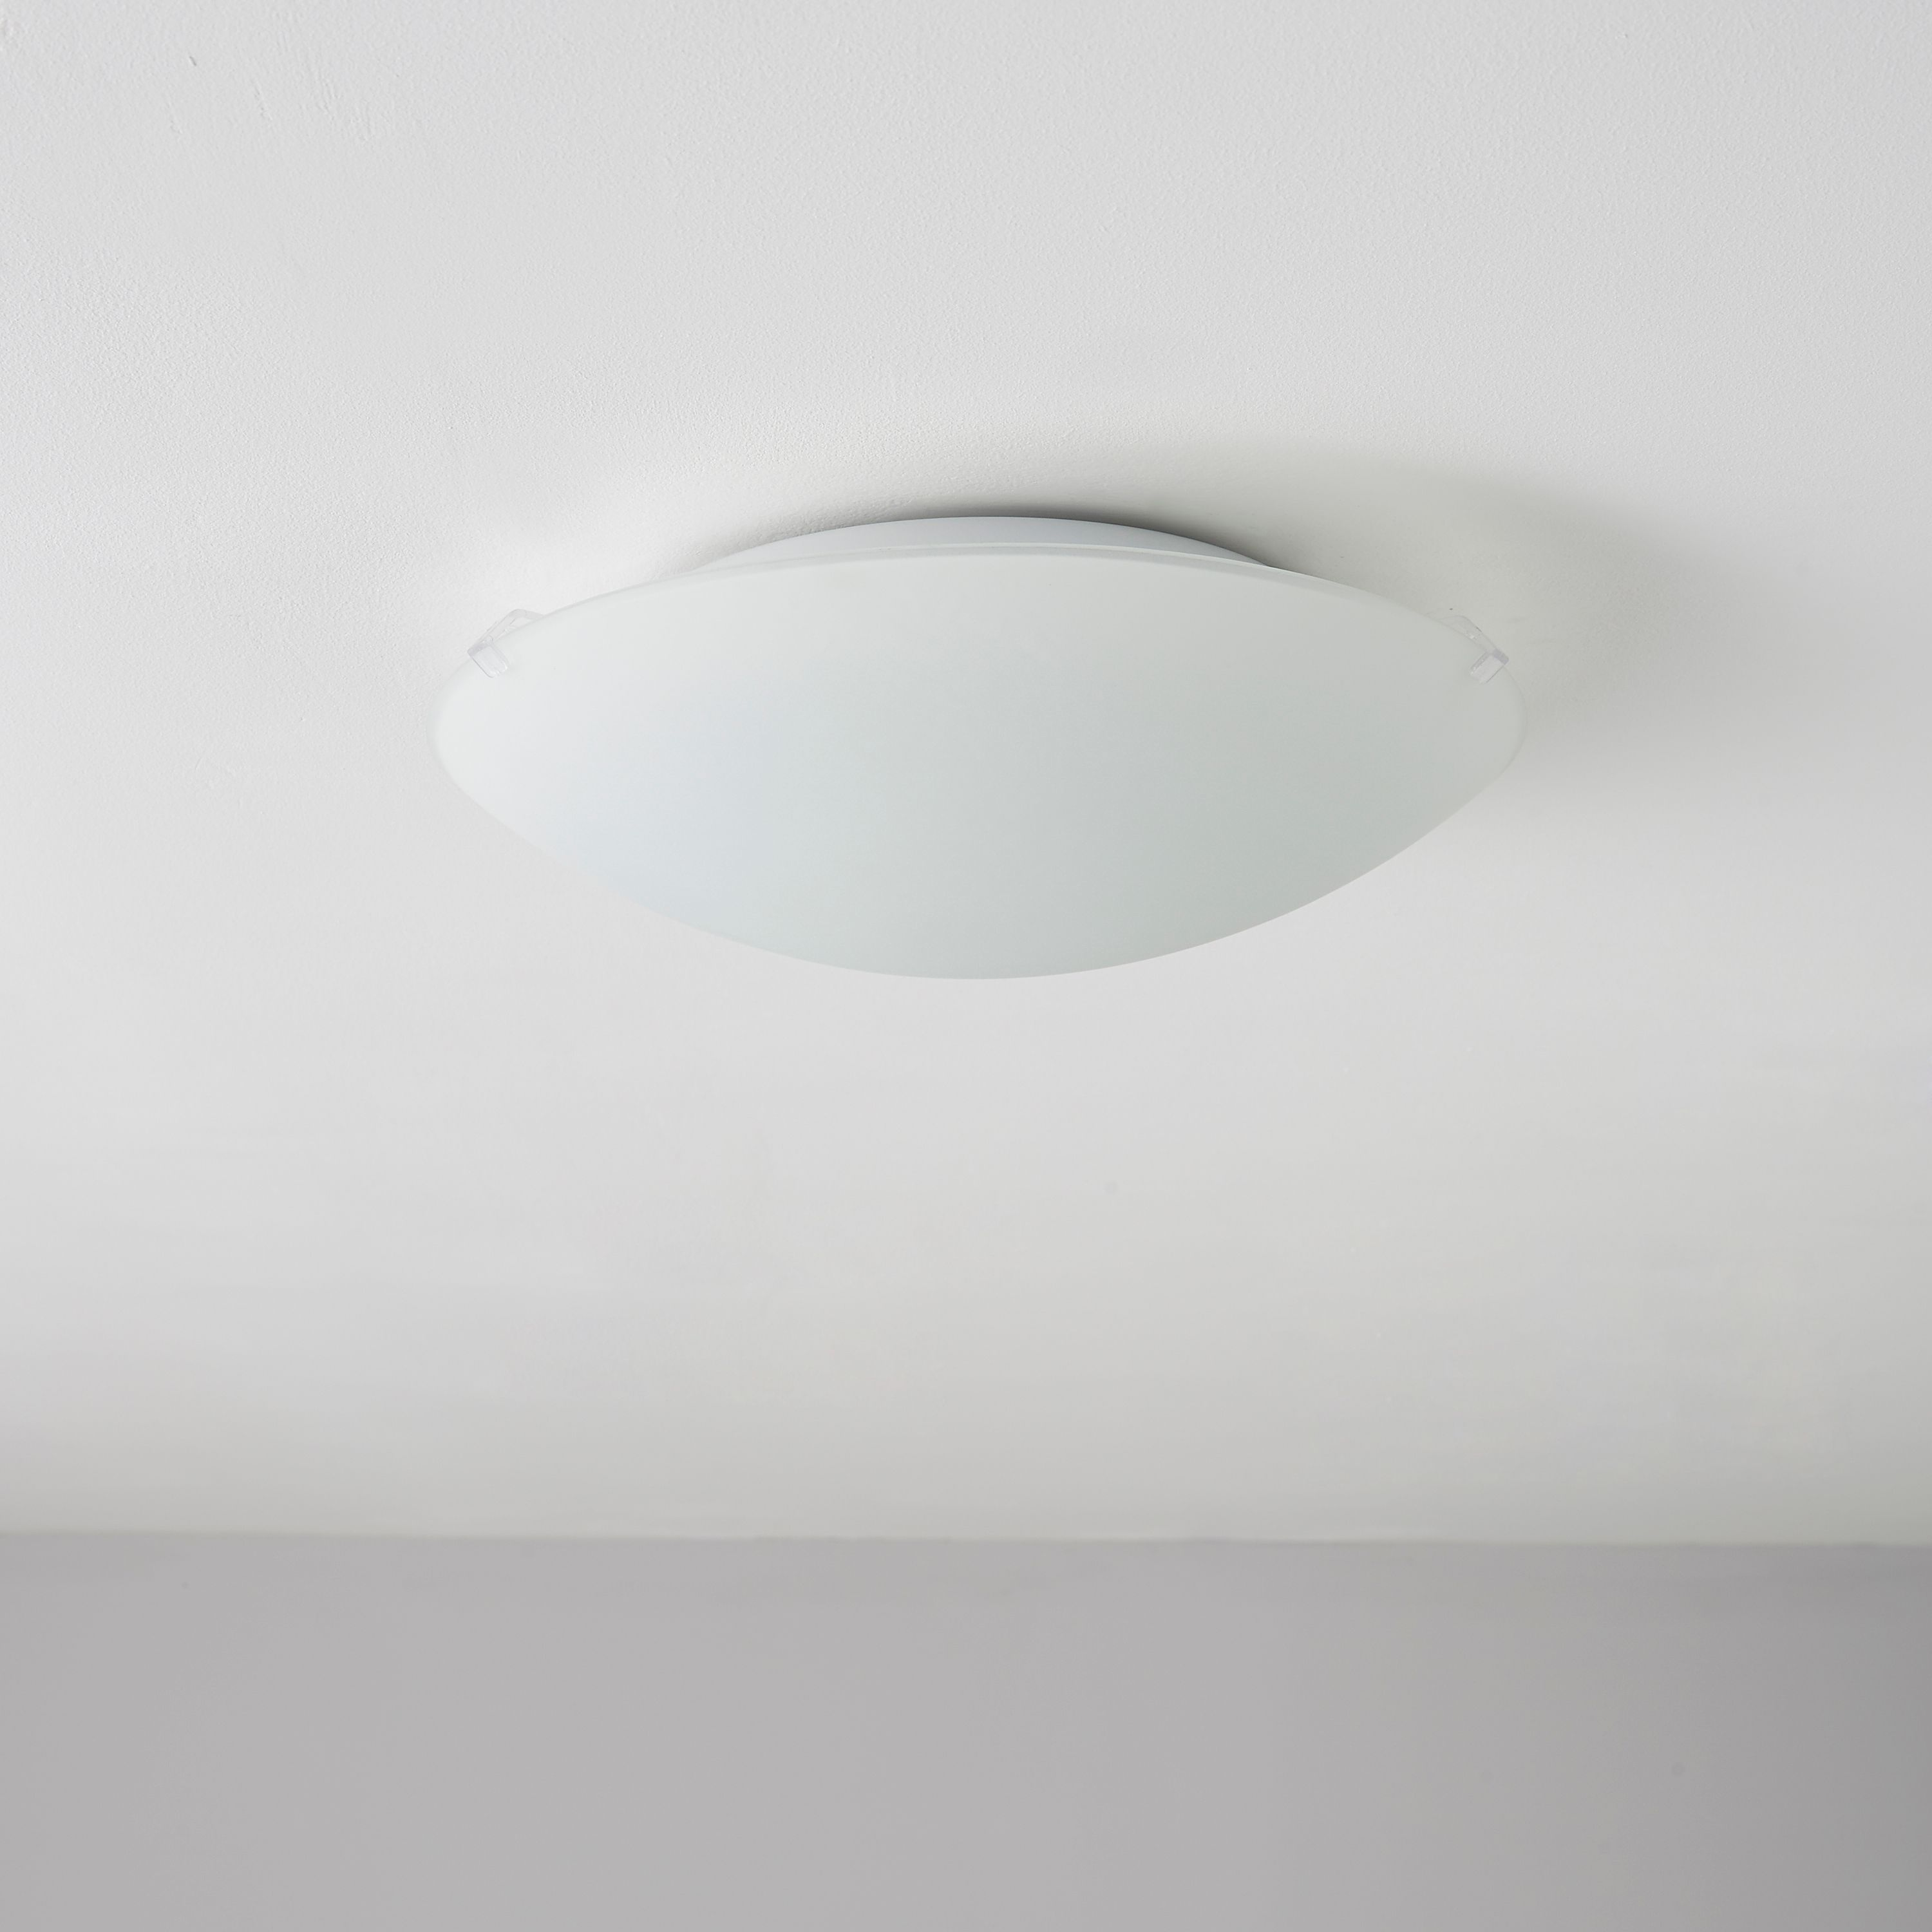 Hudson Frosted Ceiling Light Departments Diy At B Q Ceiling Lights Light B Q